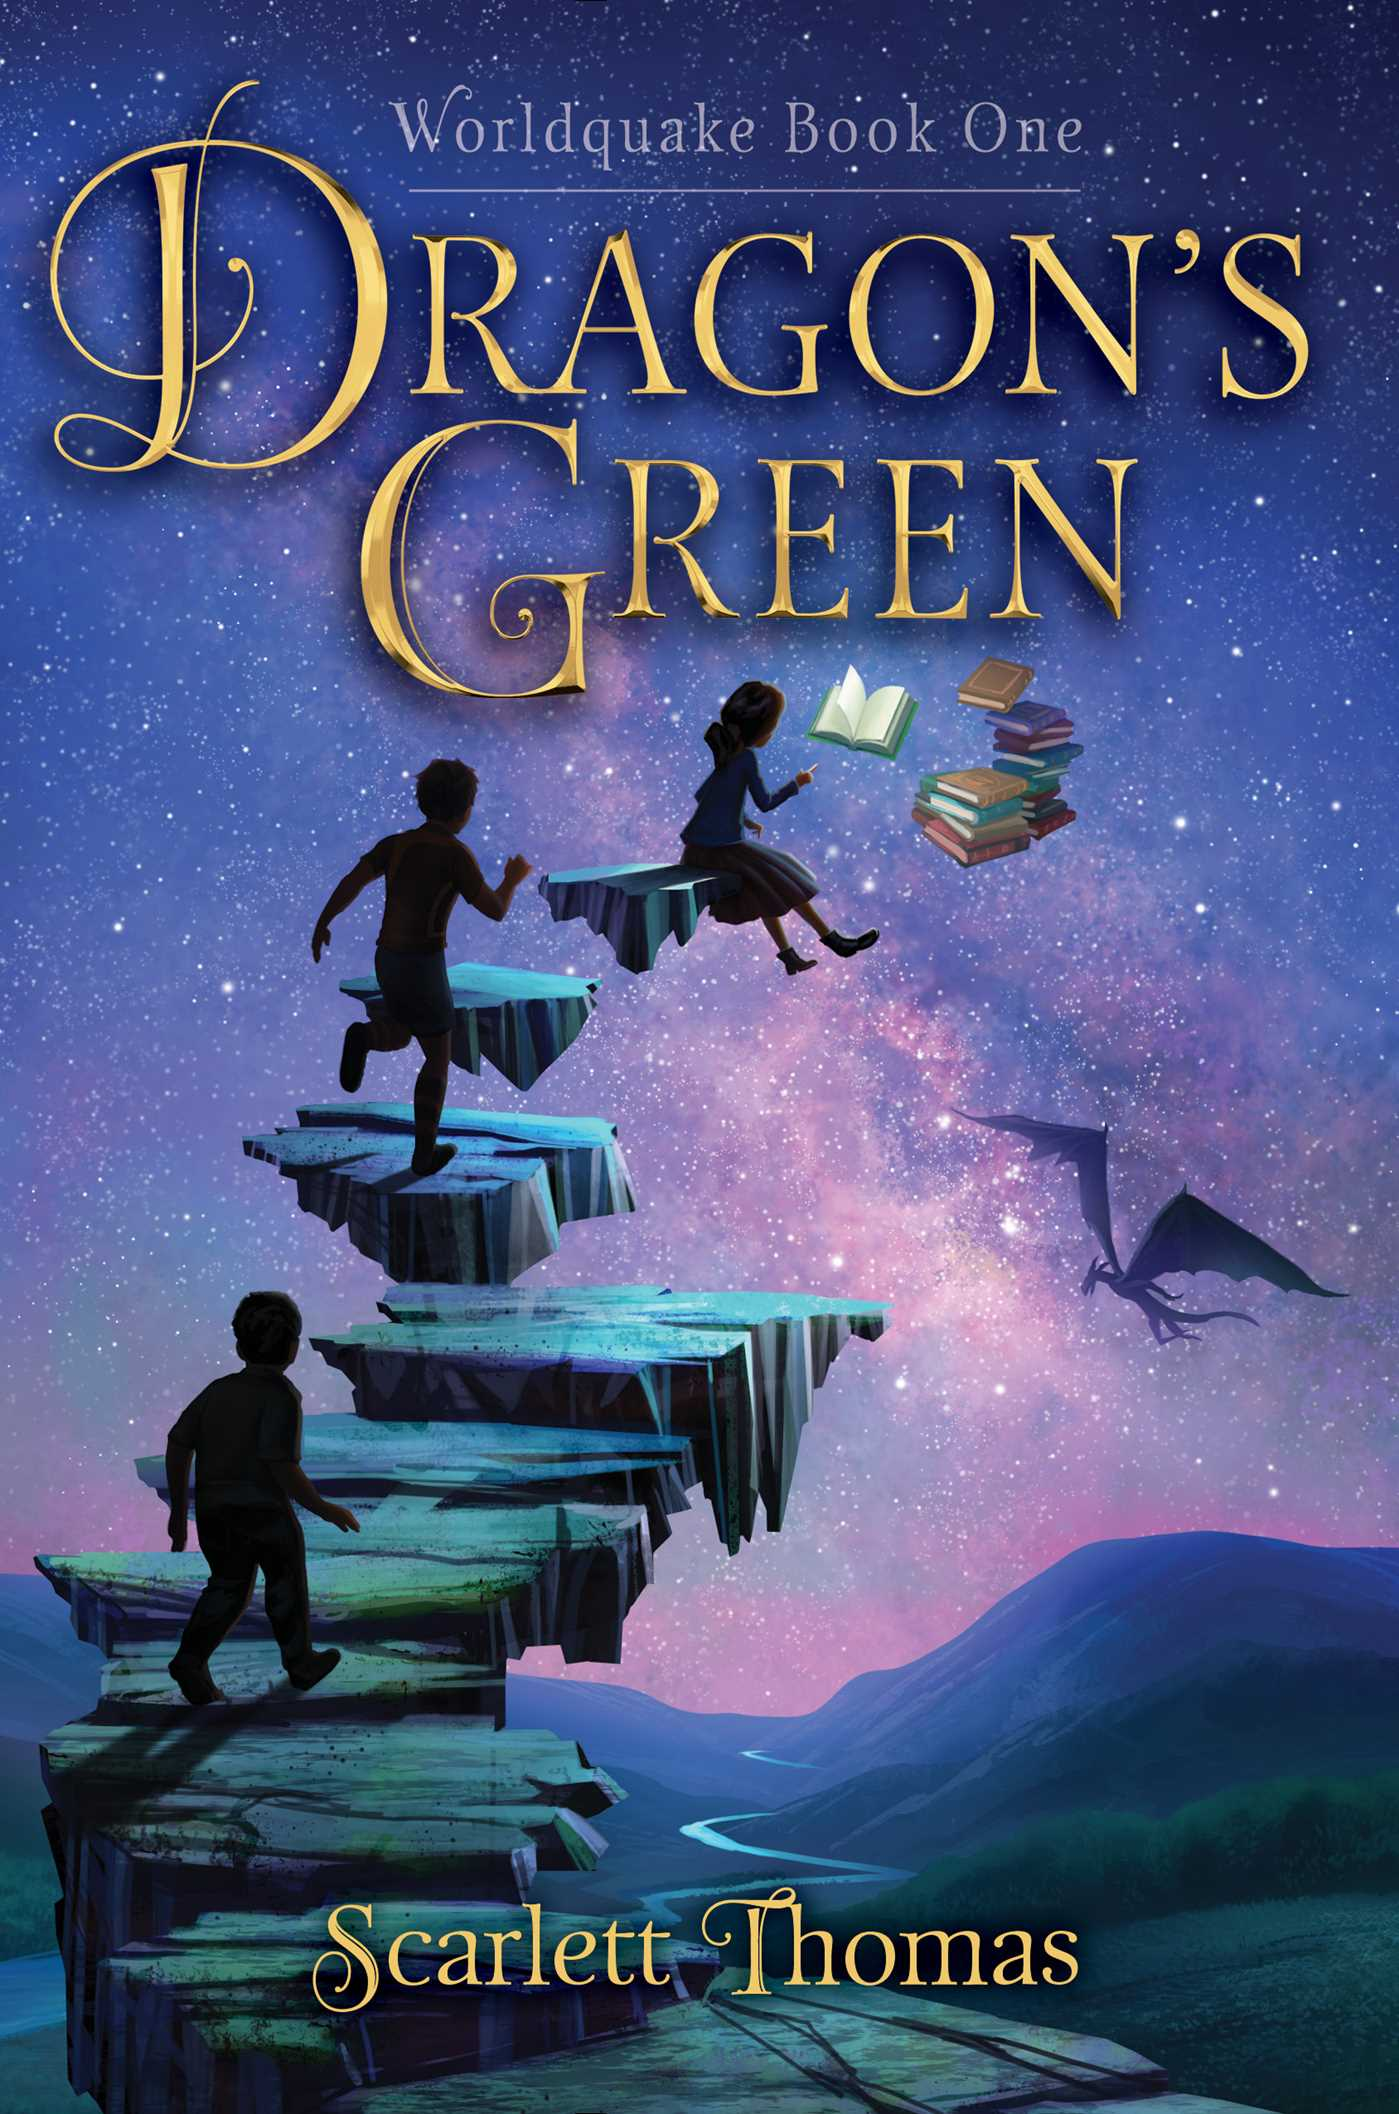 Book Cover Series S : Dragon s green book by scarlett thomas official